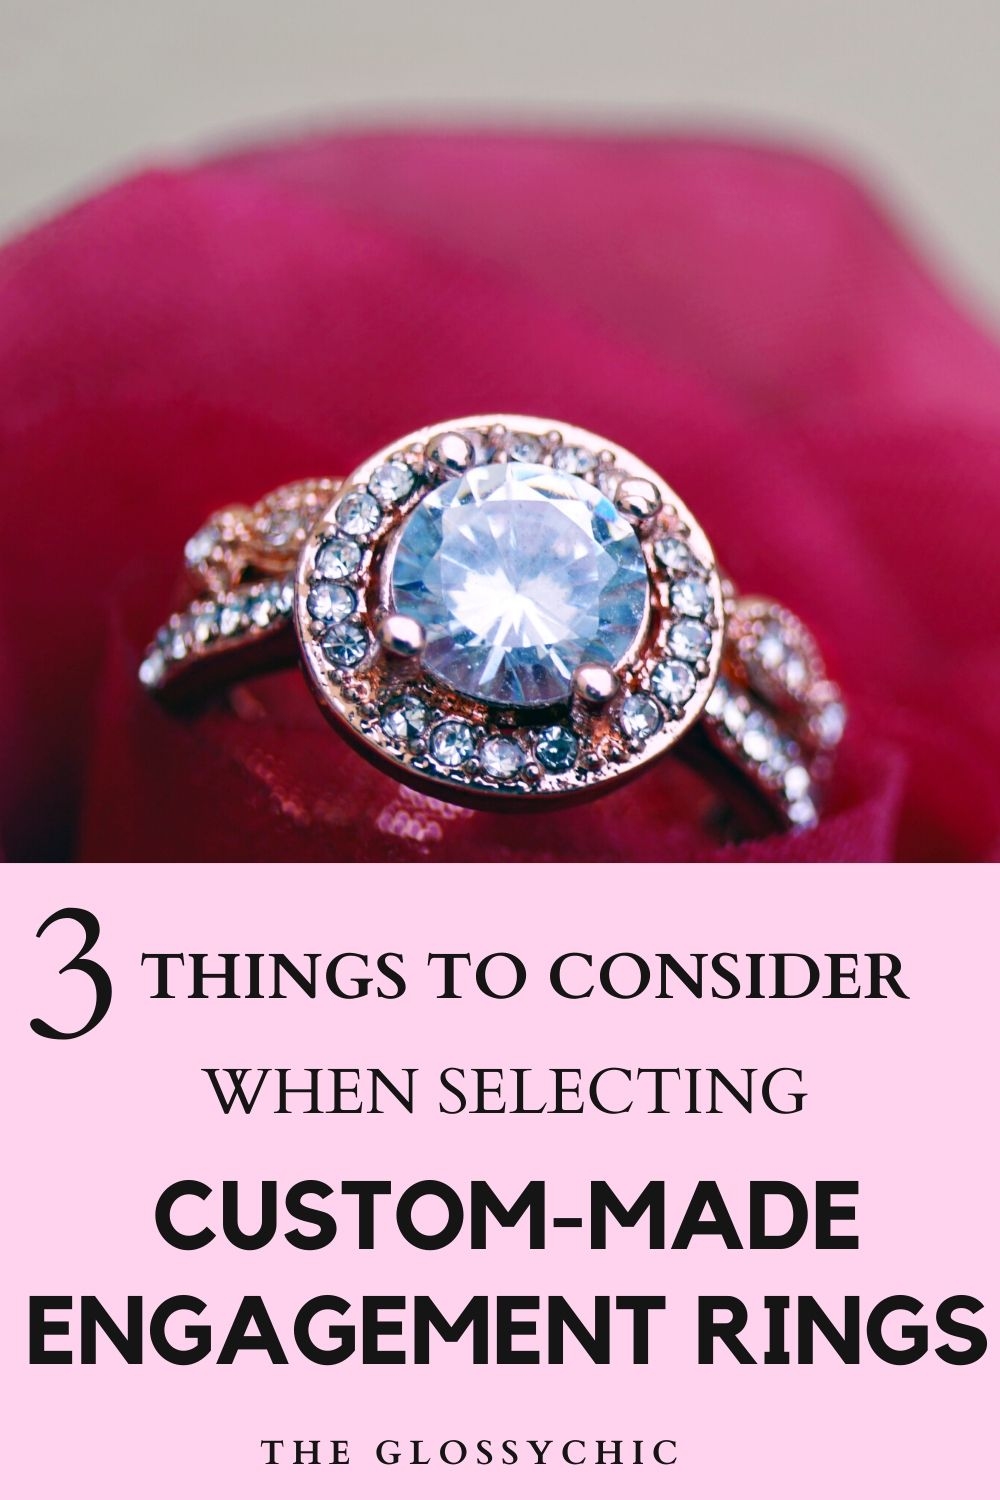 3 things to consider when selecting a custom-made engagement ring